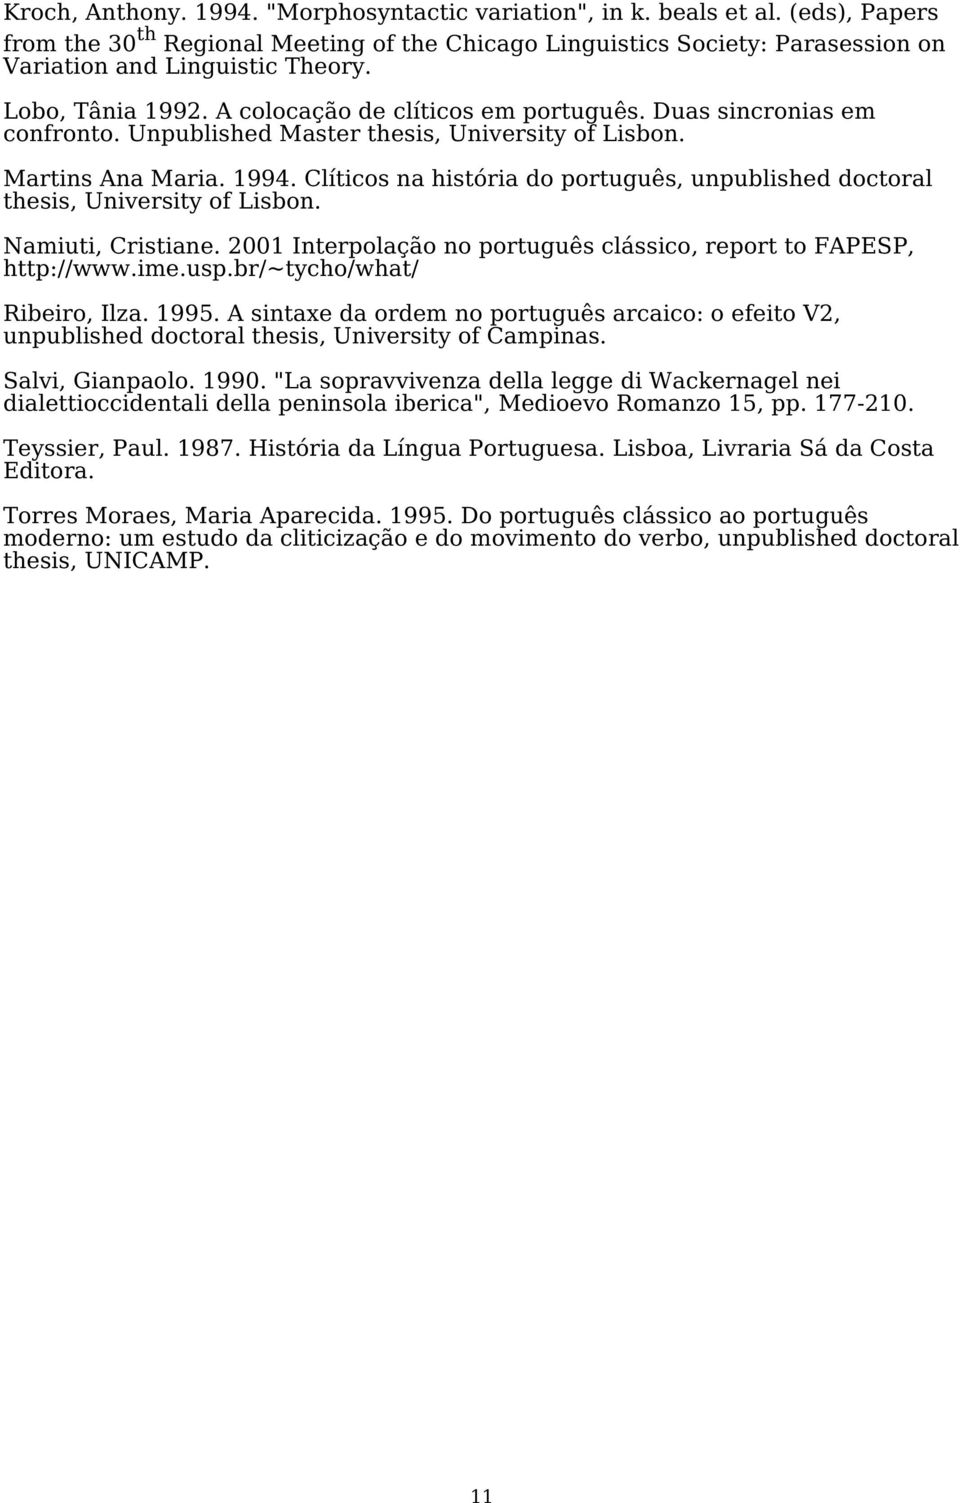 Clíticos na história do português, unpublished doctoral thesis, University of Lisbon. Namiuti, Cristiane. 2001 Interpolação no português clássico, report to FAPESP, http://www.ime.usp.